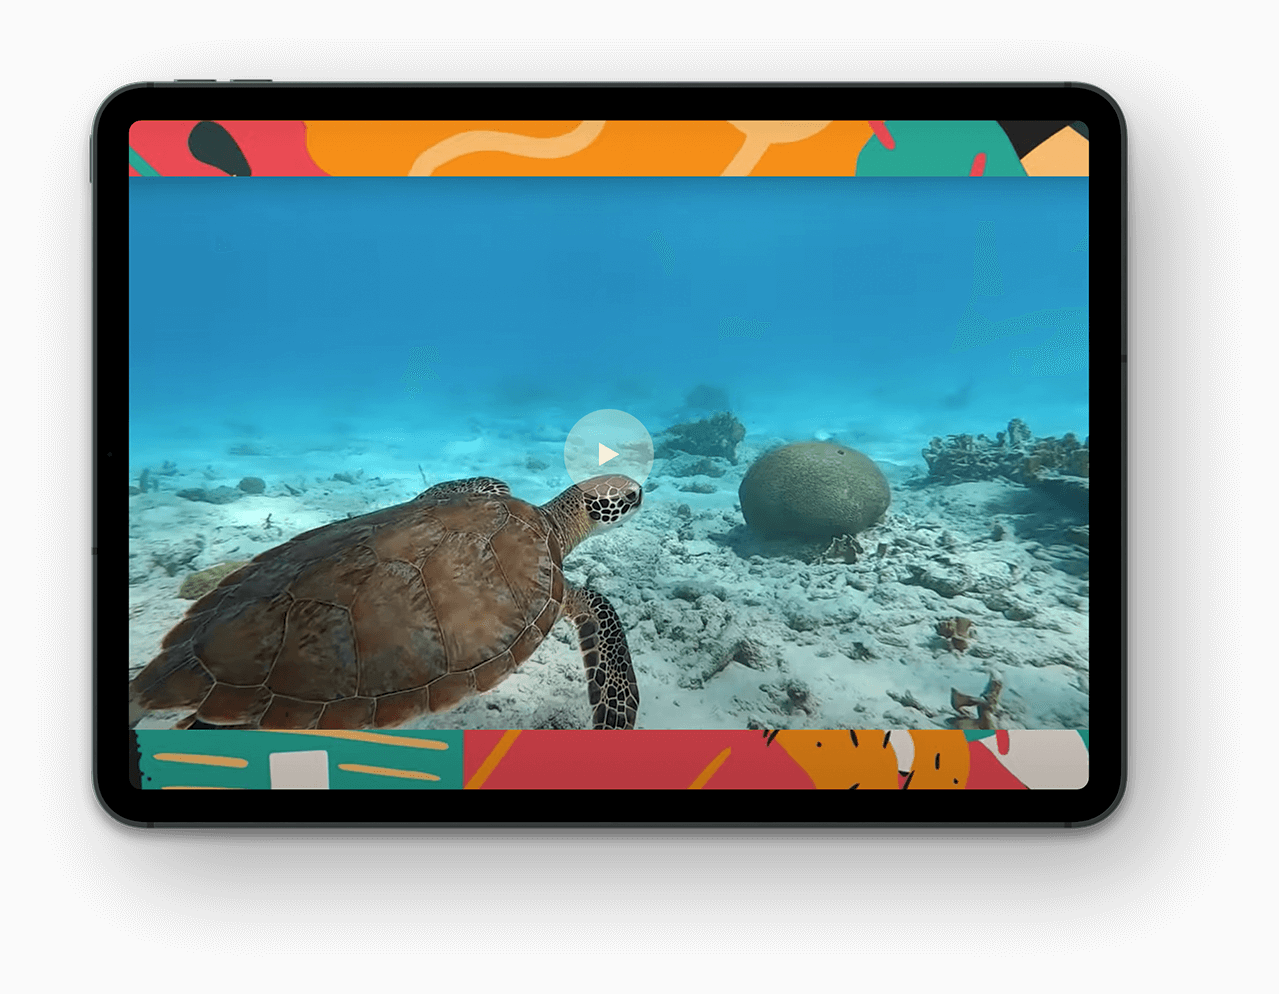 Bonaire Ipad view